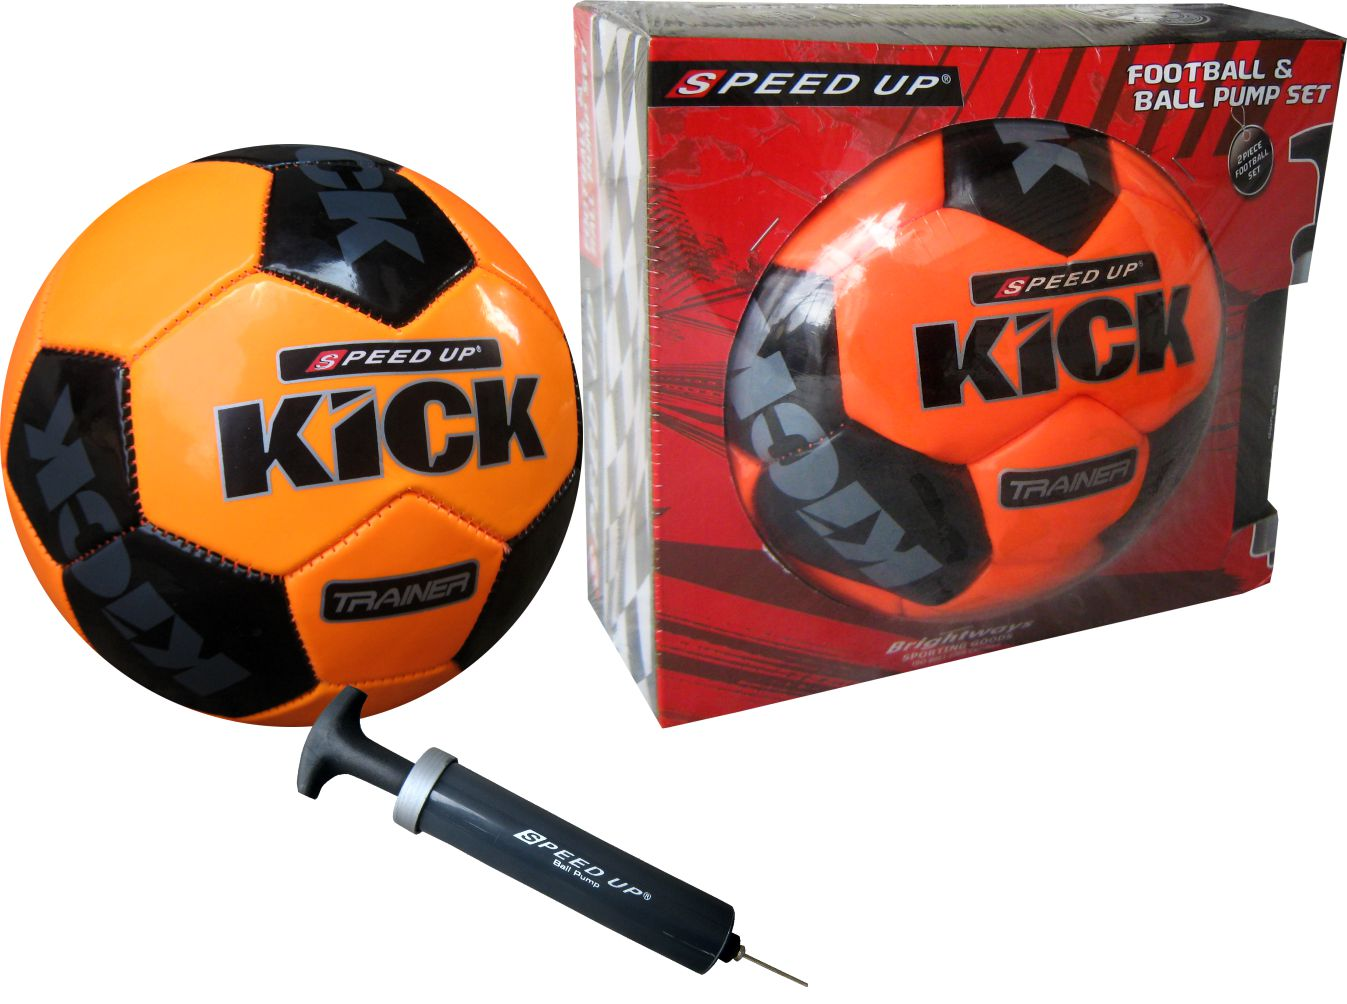 1374 FOOTBALL TRAINING 2PCS SET